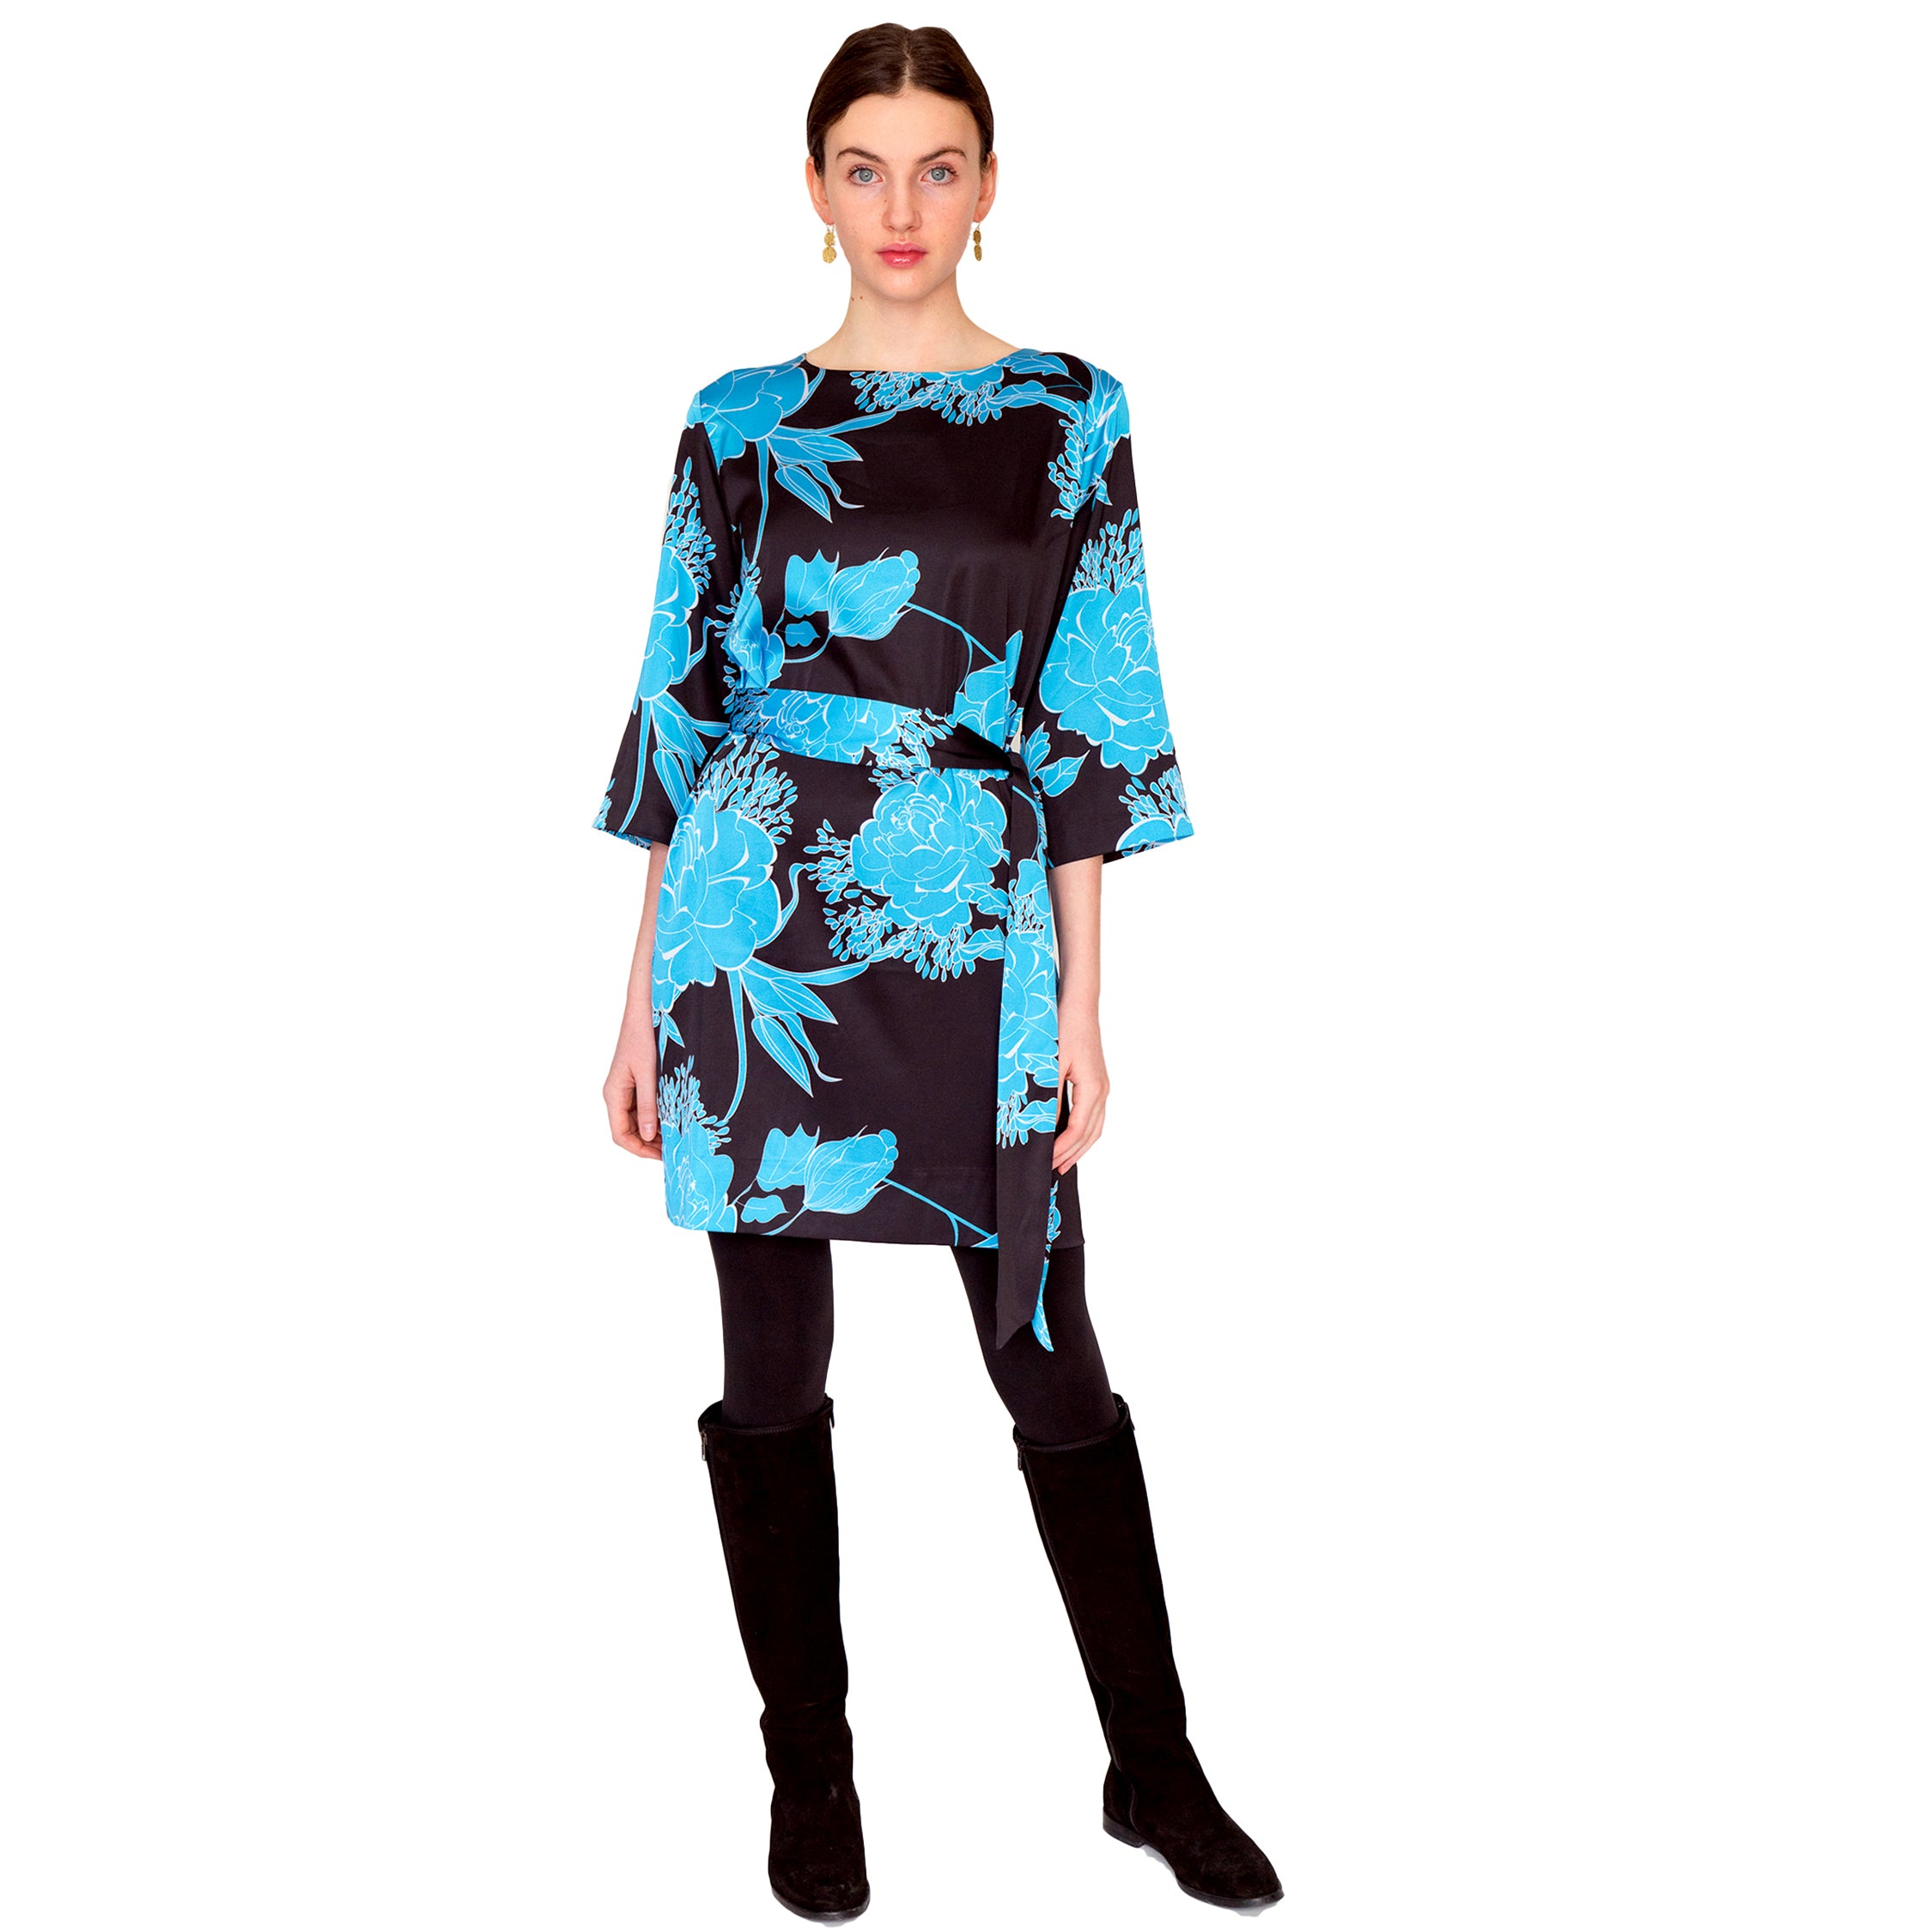 Jackie 3/4 Sleeve Dress in Roses are Blue - Elizabeth Ackerman New York